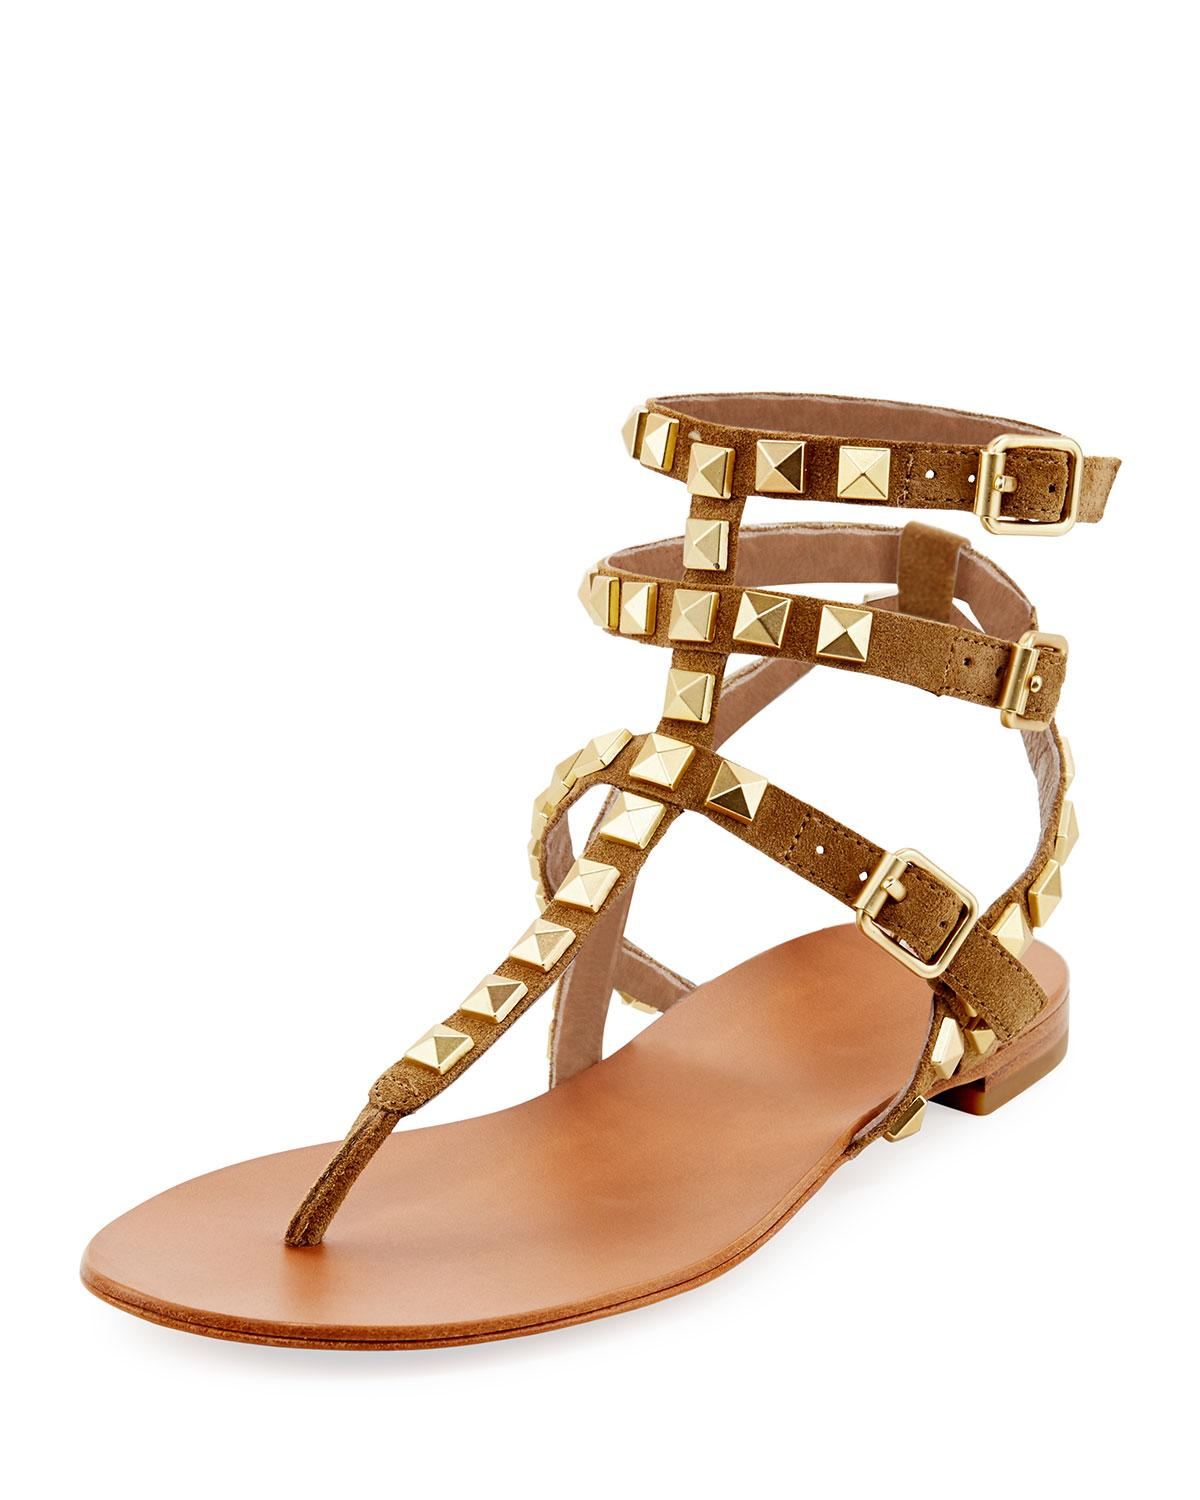 20975e5a6 ... 2dc25ef06bd98 Lyst - Ash Mumbaia Suede Studded Flat Sandals Brown multi  in Brown ...